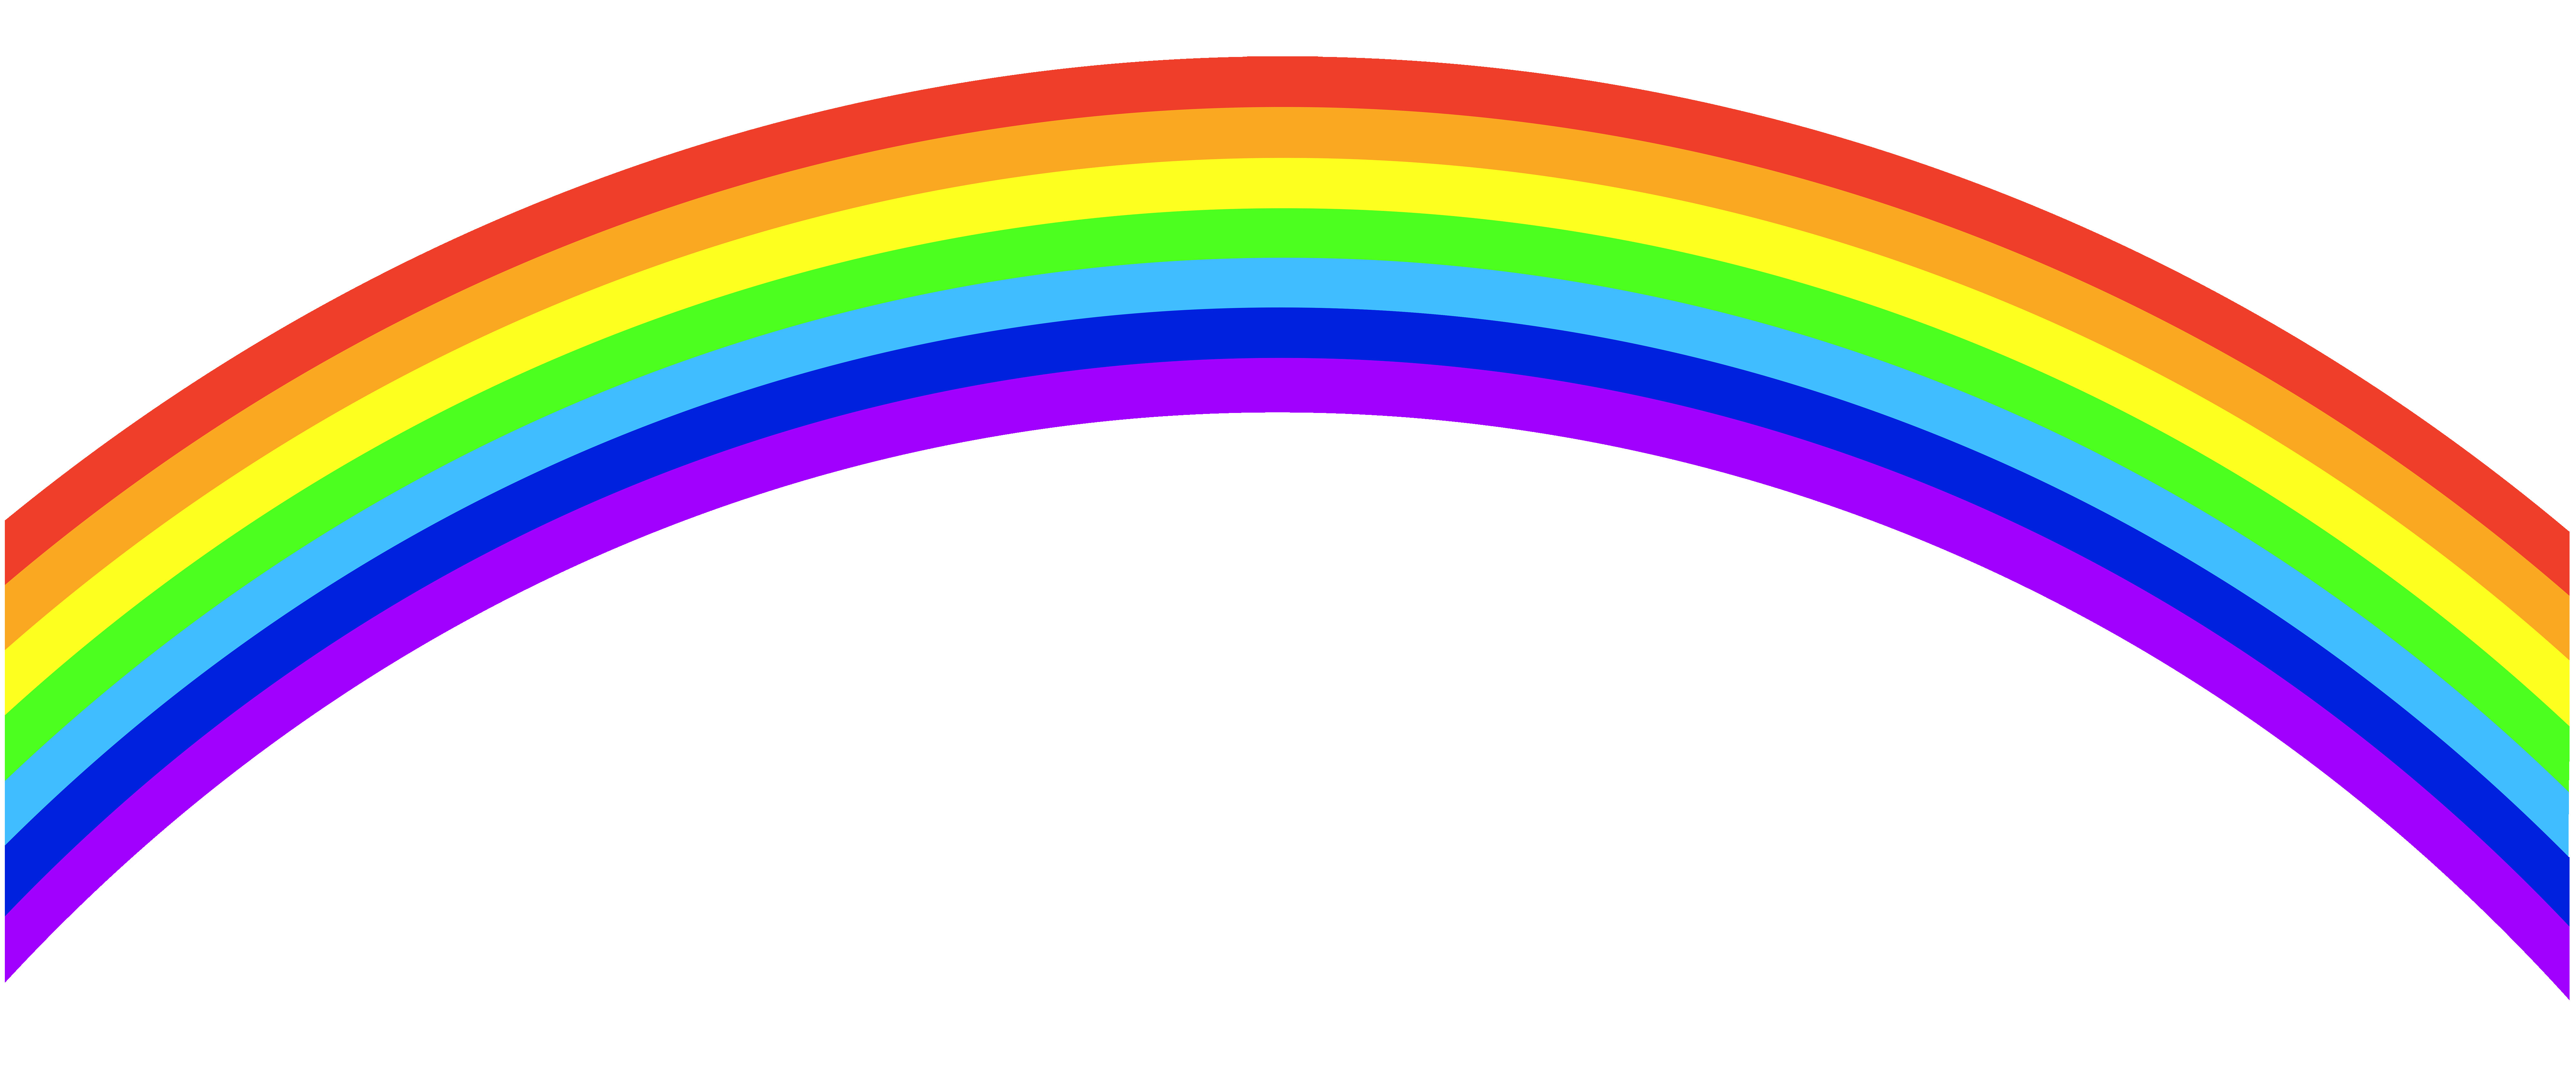 rainbow clipart clip vector royalty banner getdrawings cliparts